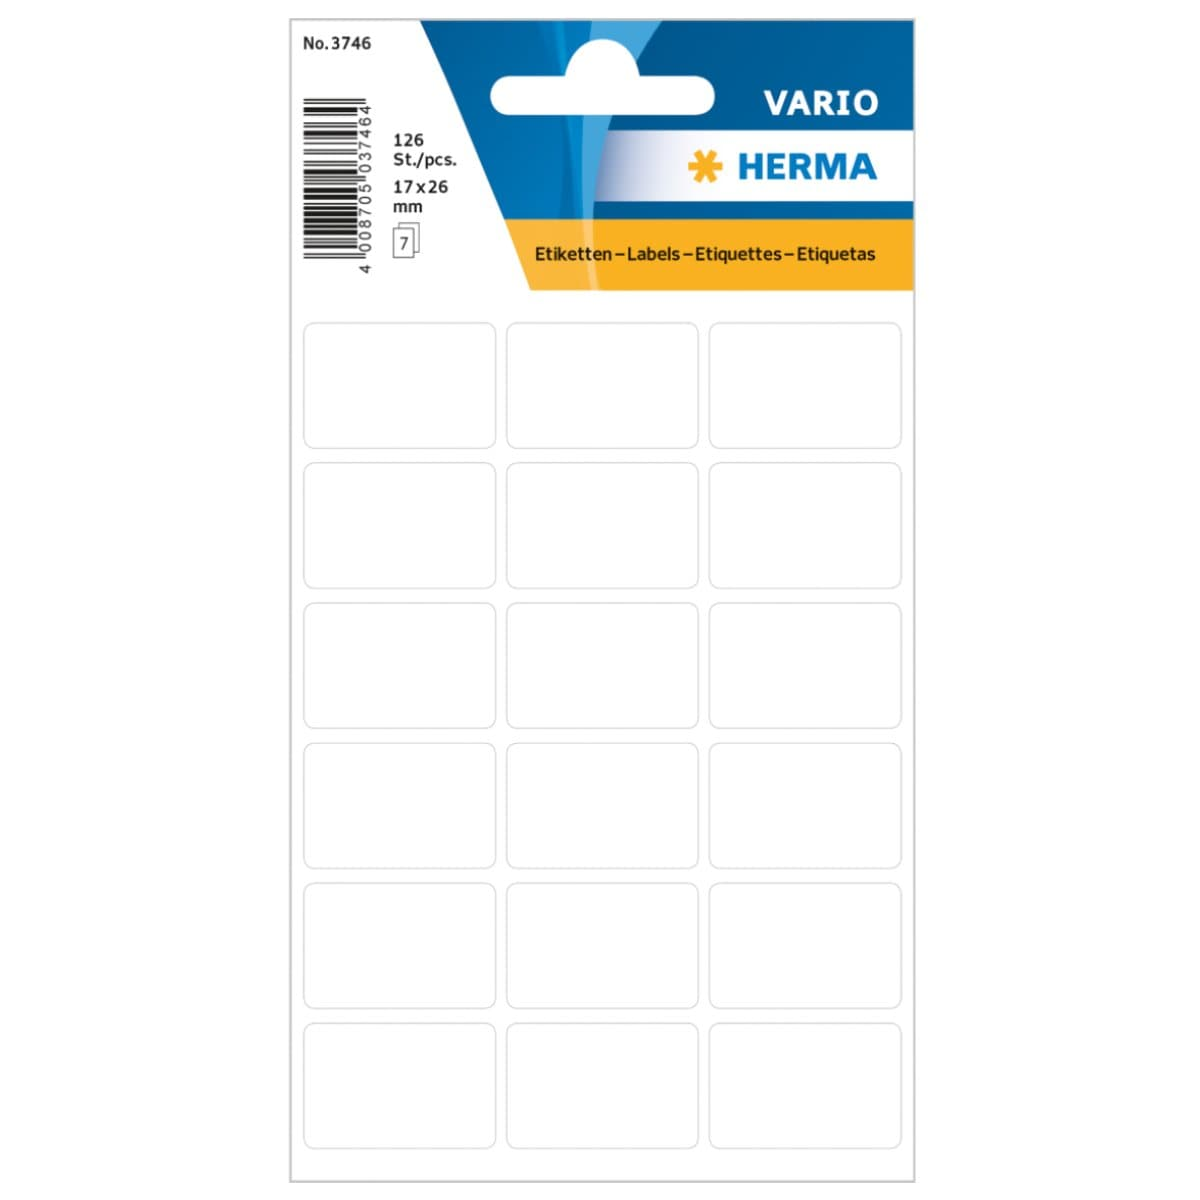 Herma Vario Sticker Labels, 17 x 26 mm, 126/pack, White